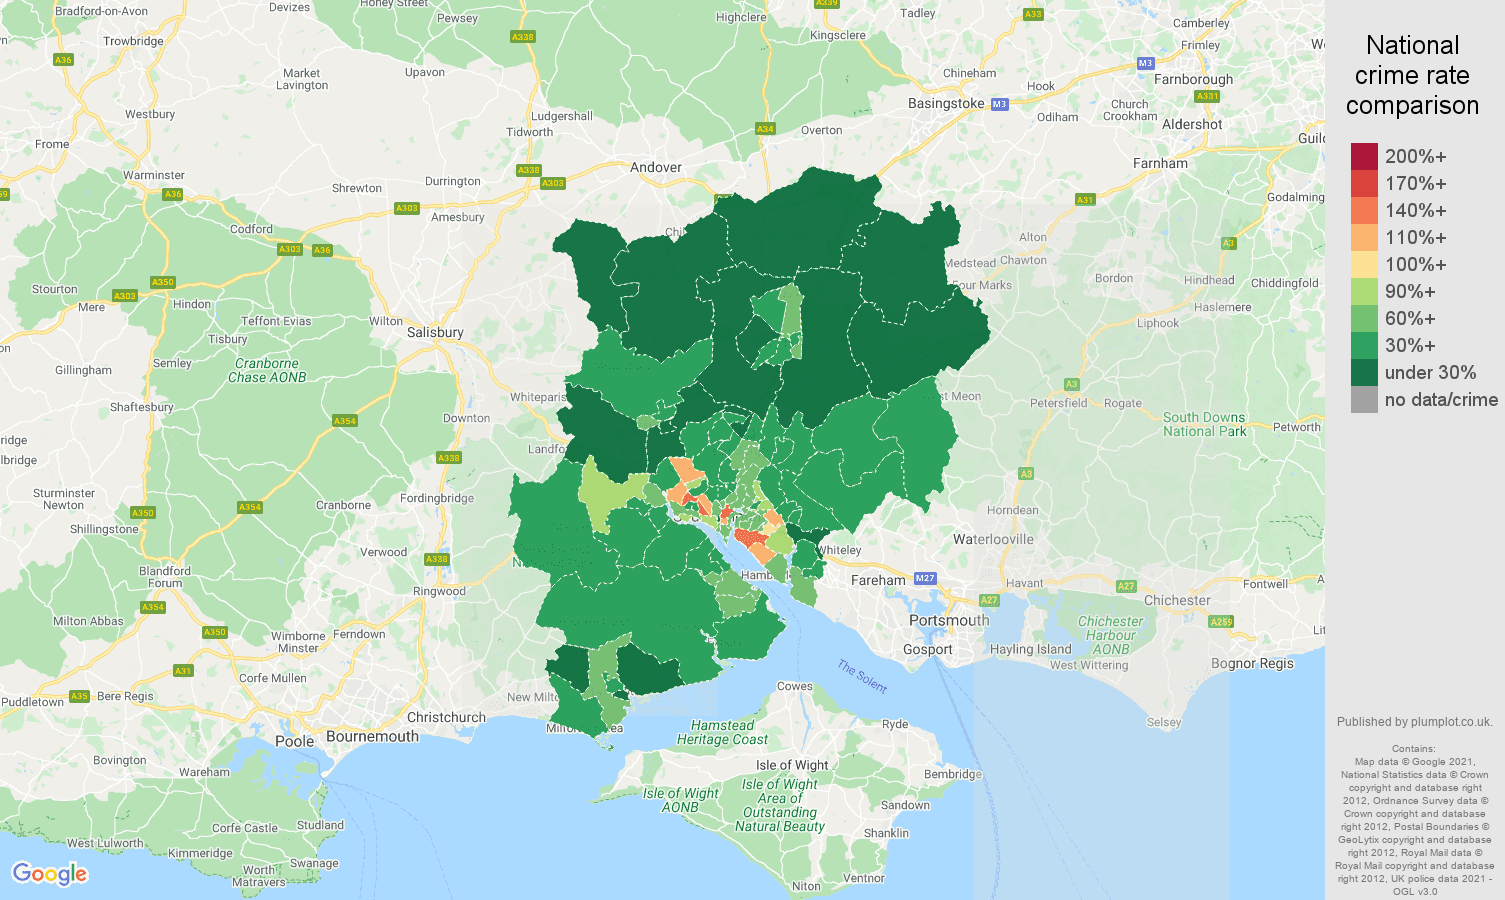 Southampton antisocial behaviour crime rate comparison map